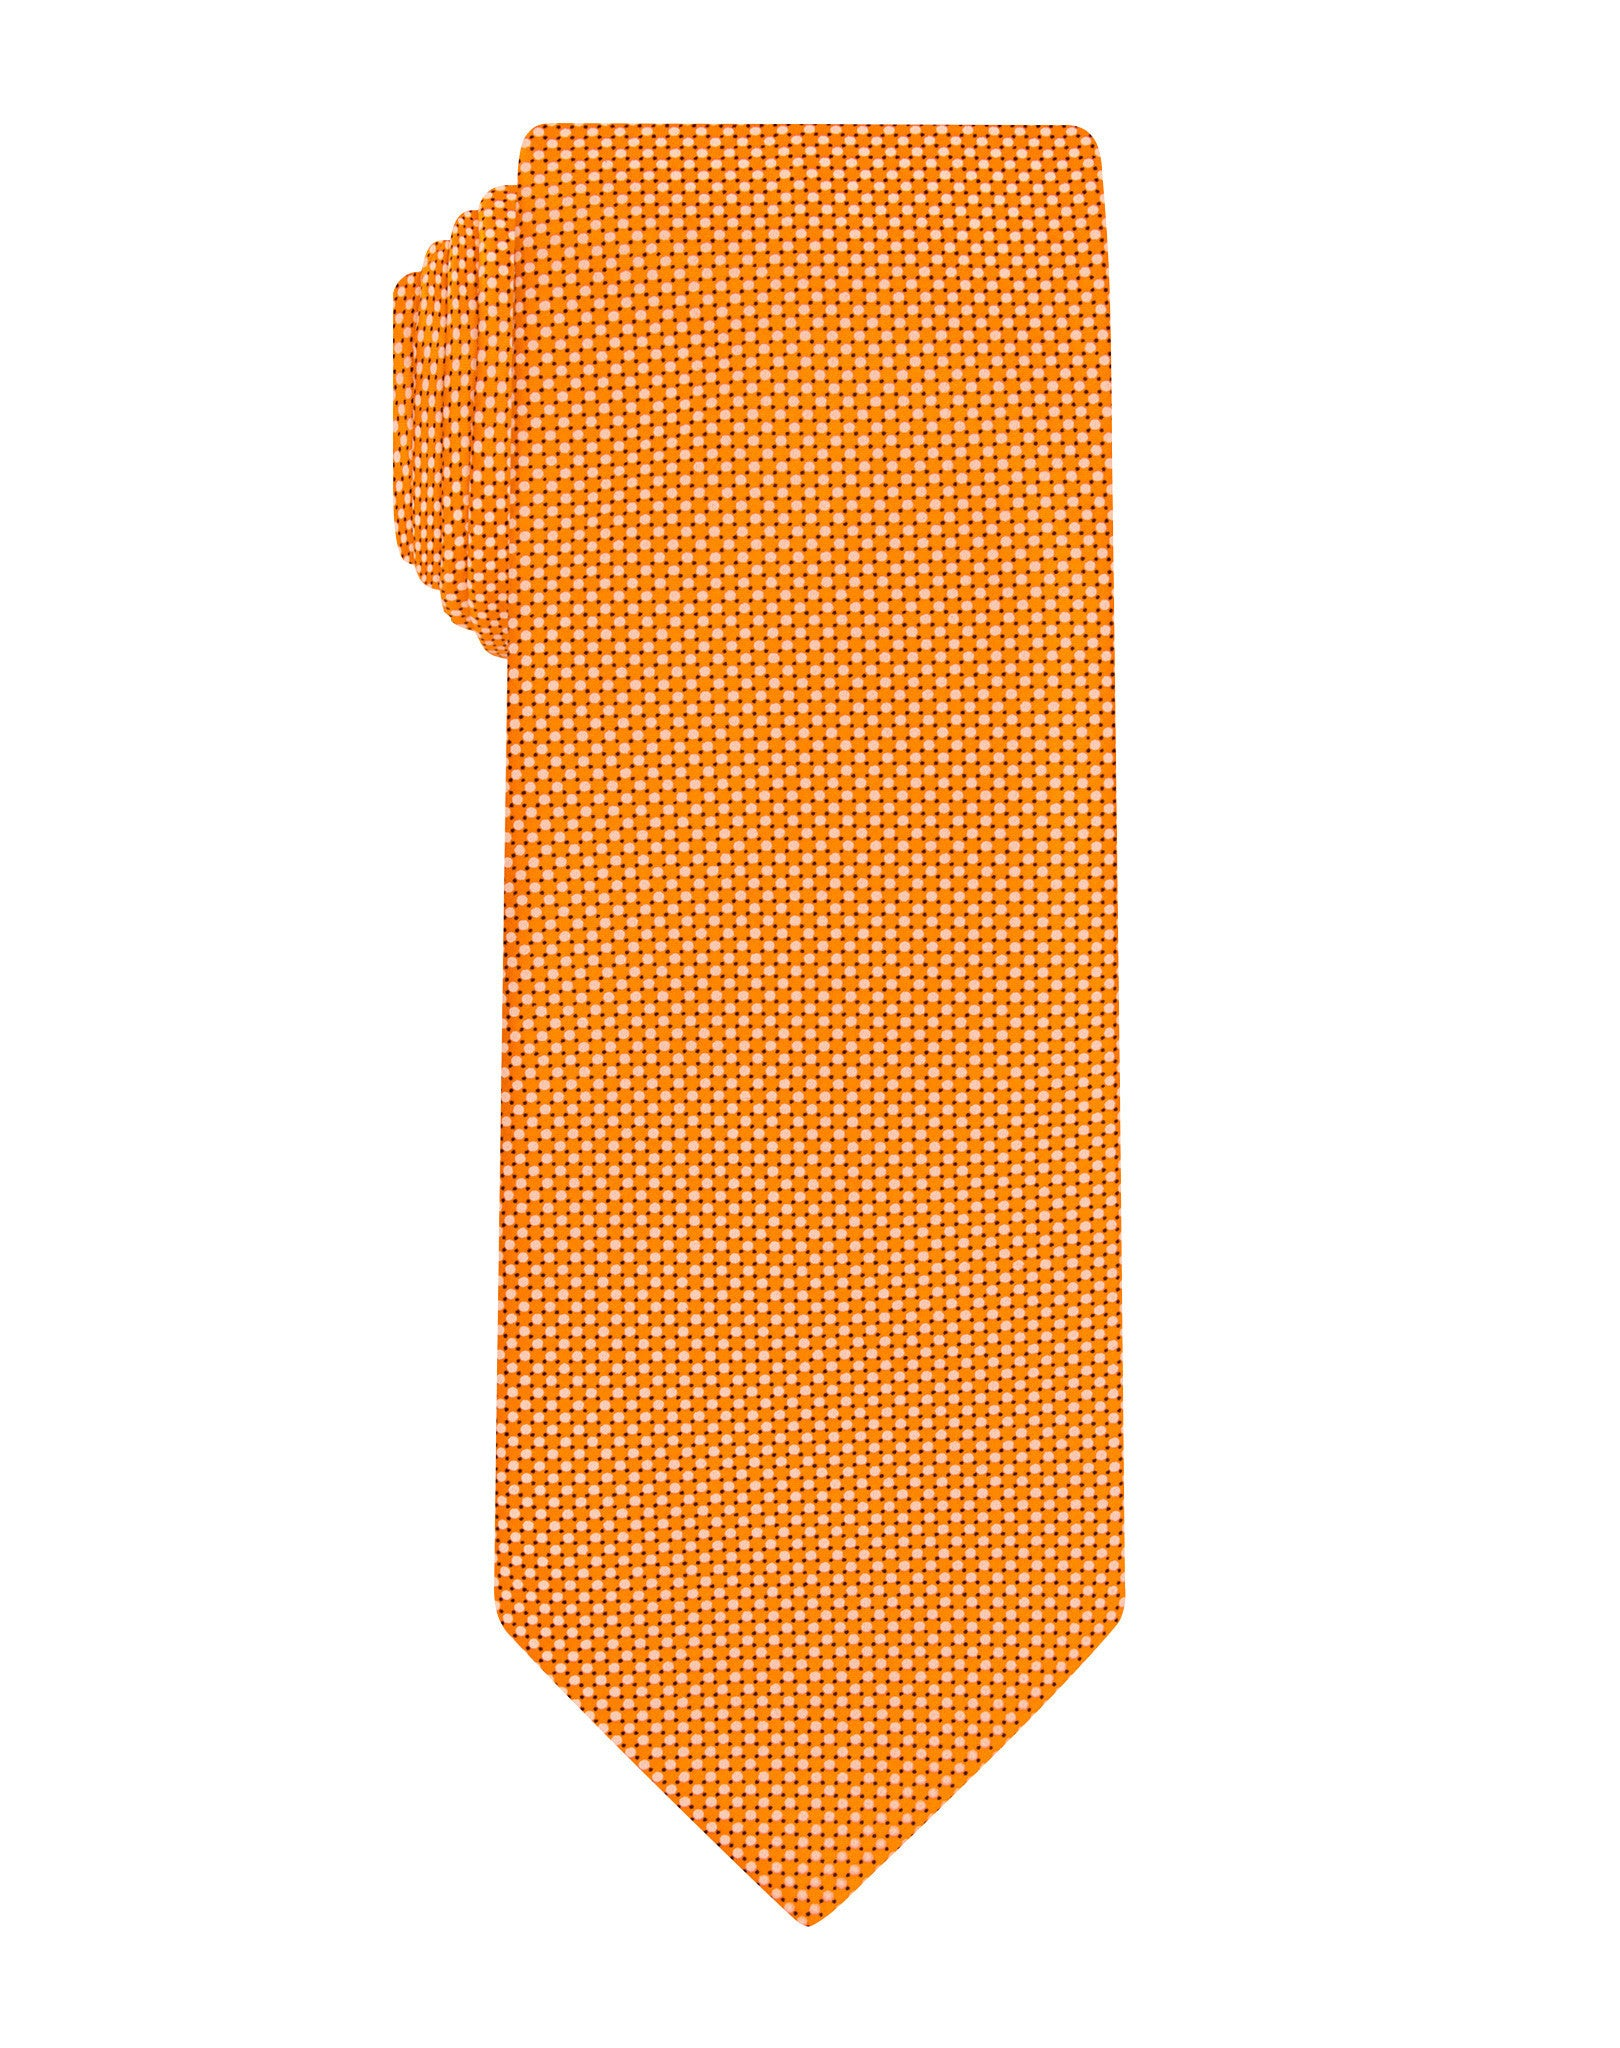 Orange Handprinted Pinpoint Tie